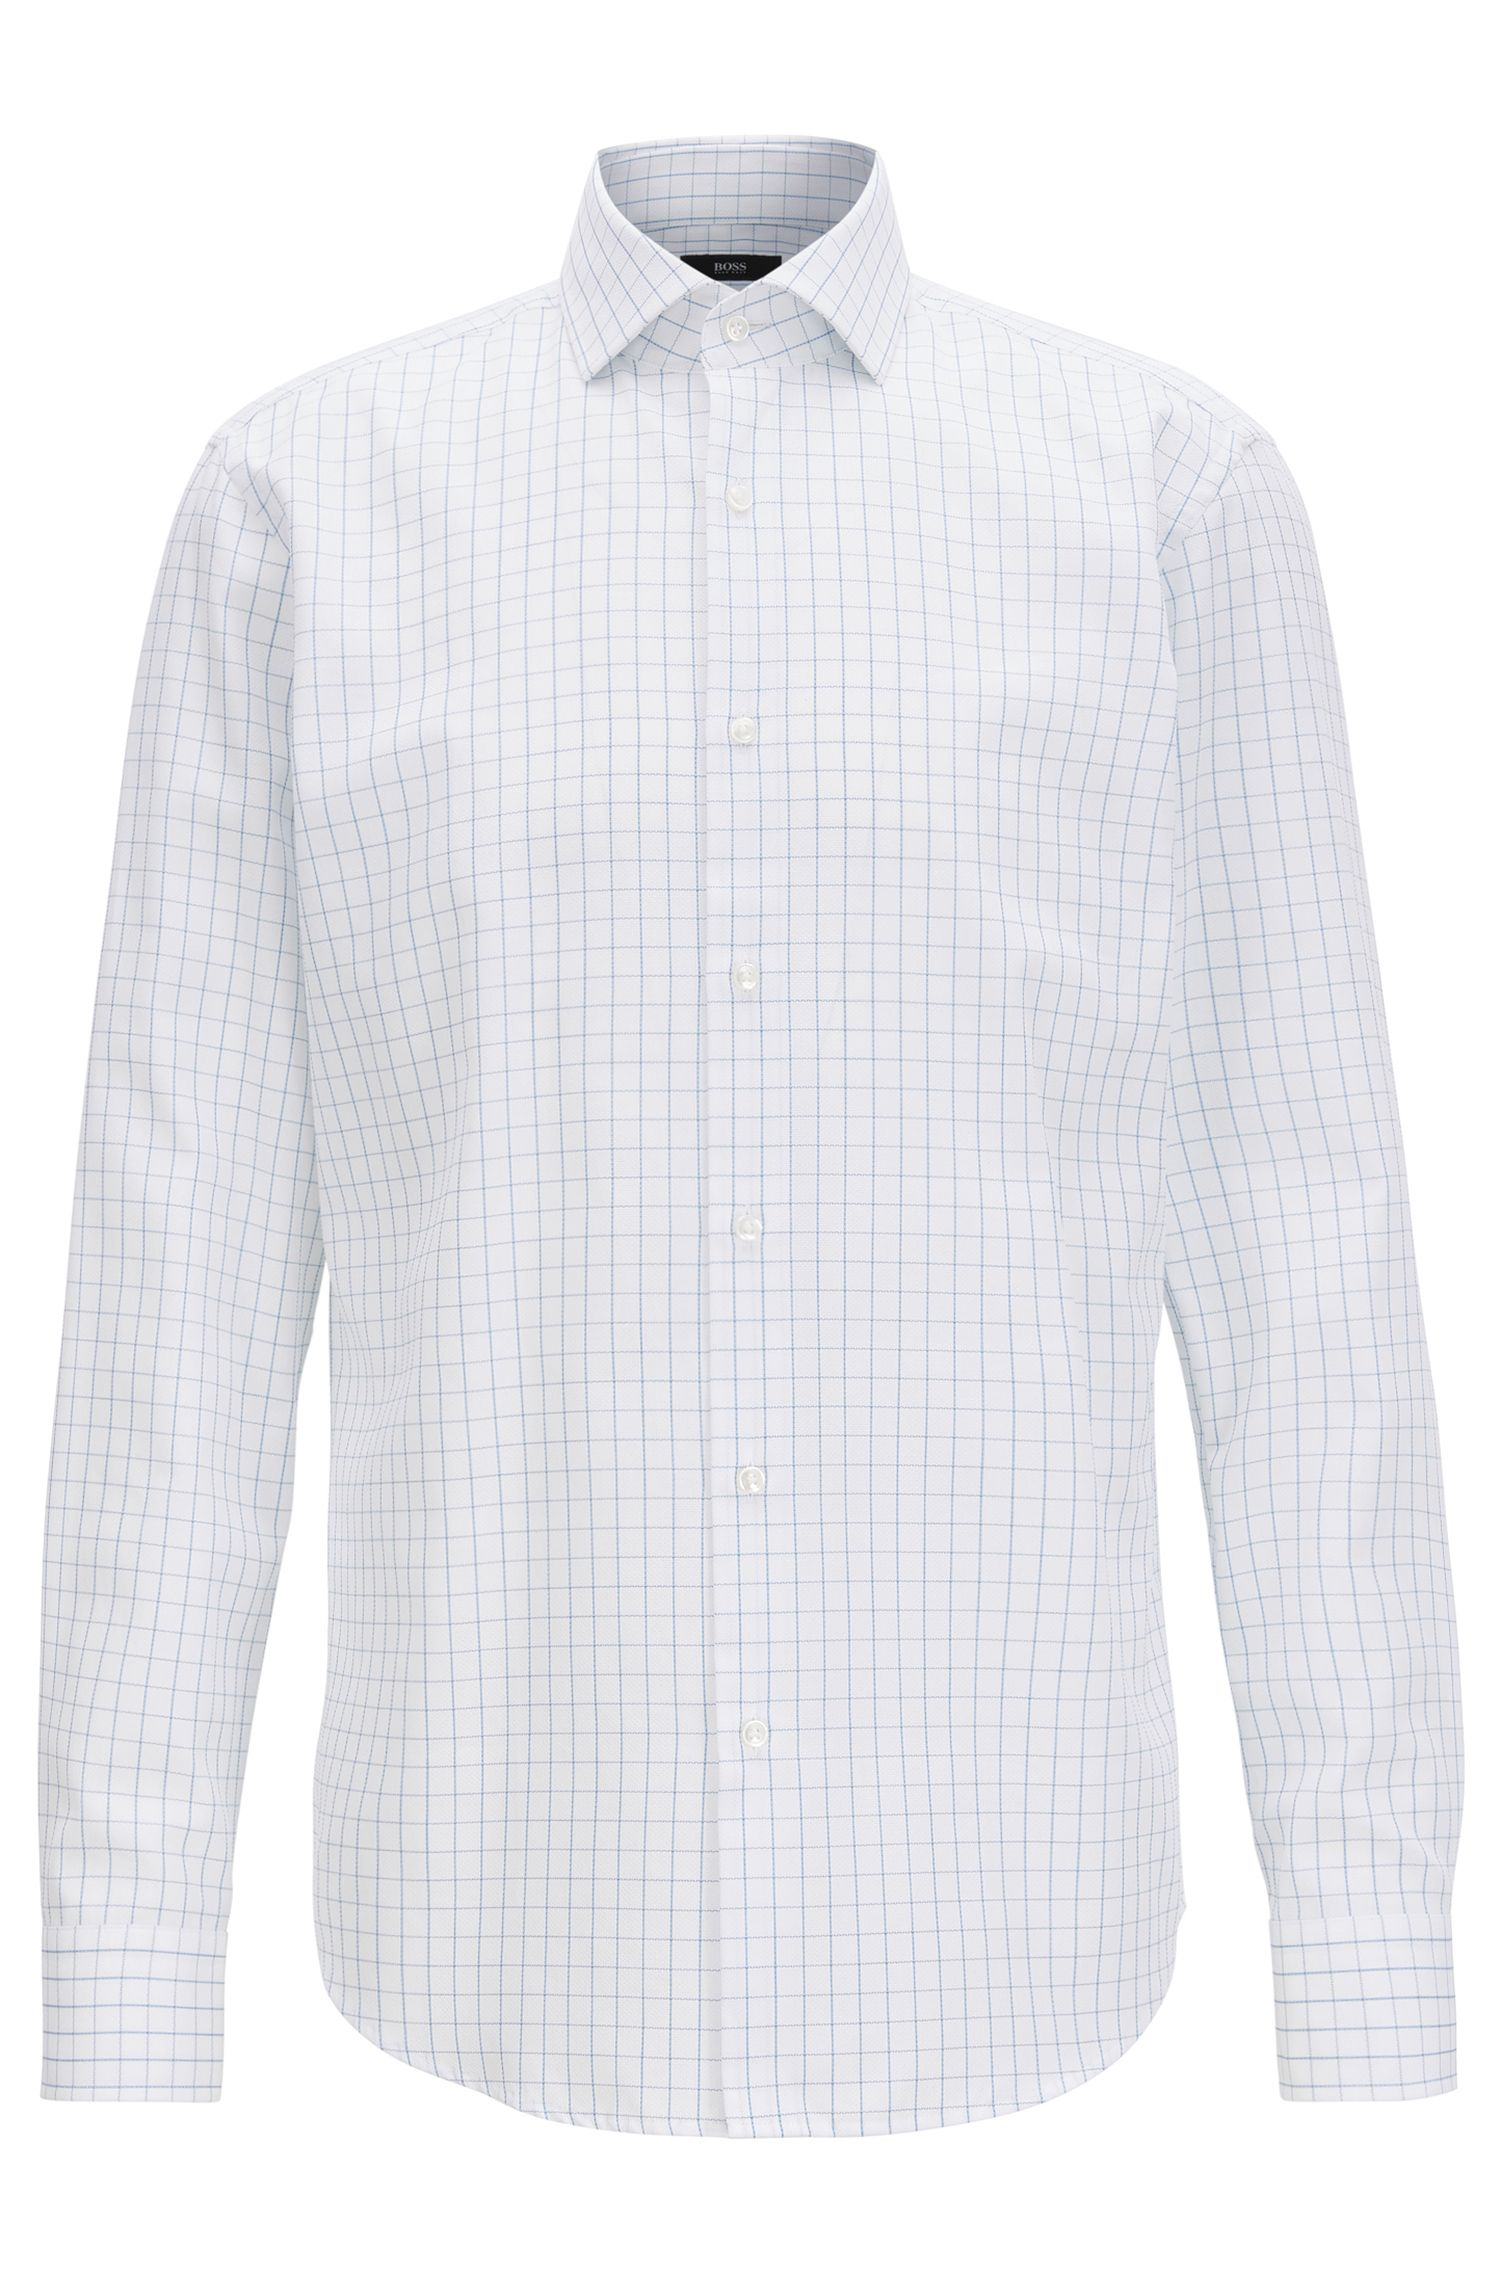 Checked cotton shirt in a regular fit